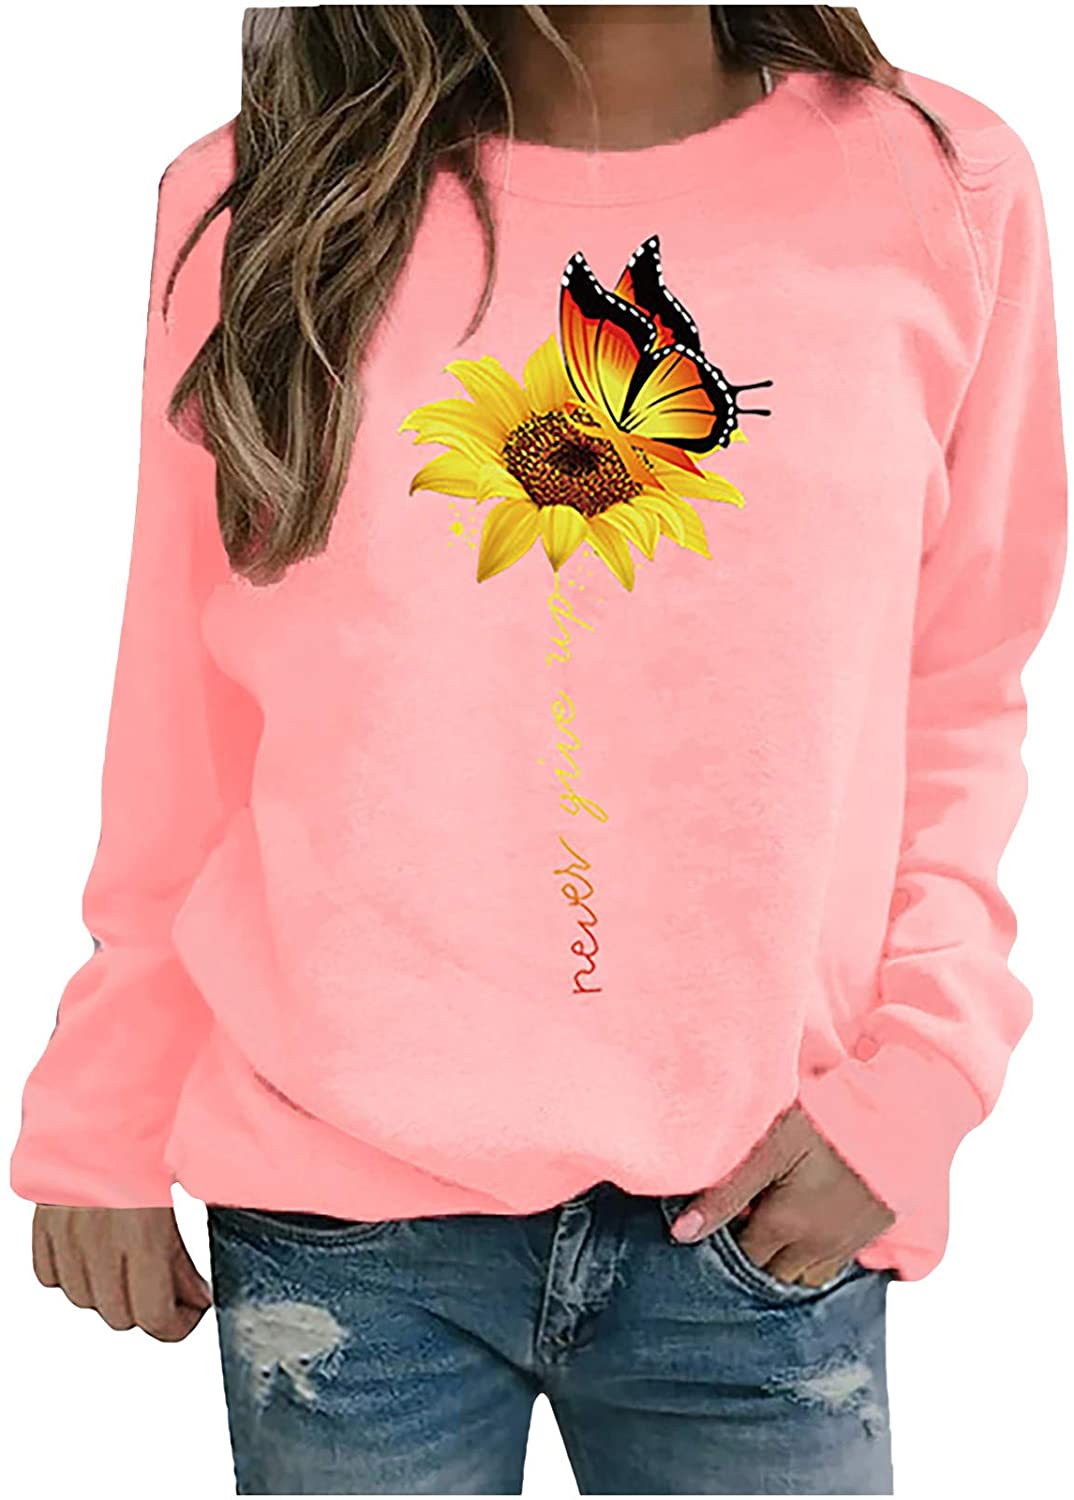 Womens Sunflower Butterfly Print Casual Long Sleeve Round Neck Soft Sweatshirts Tops Blouse Sweater